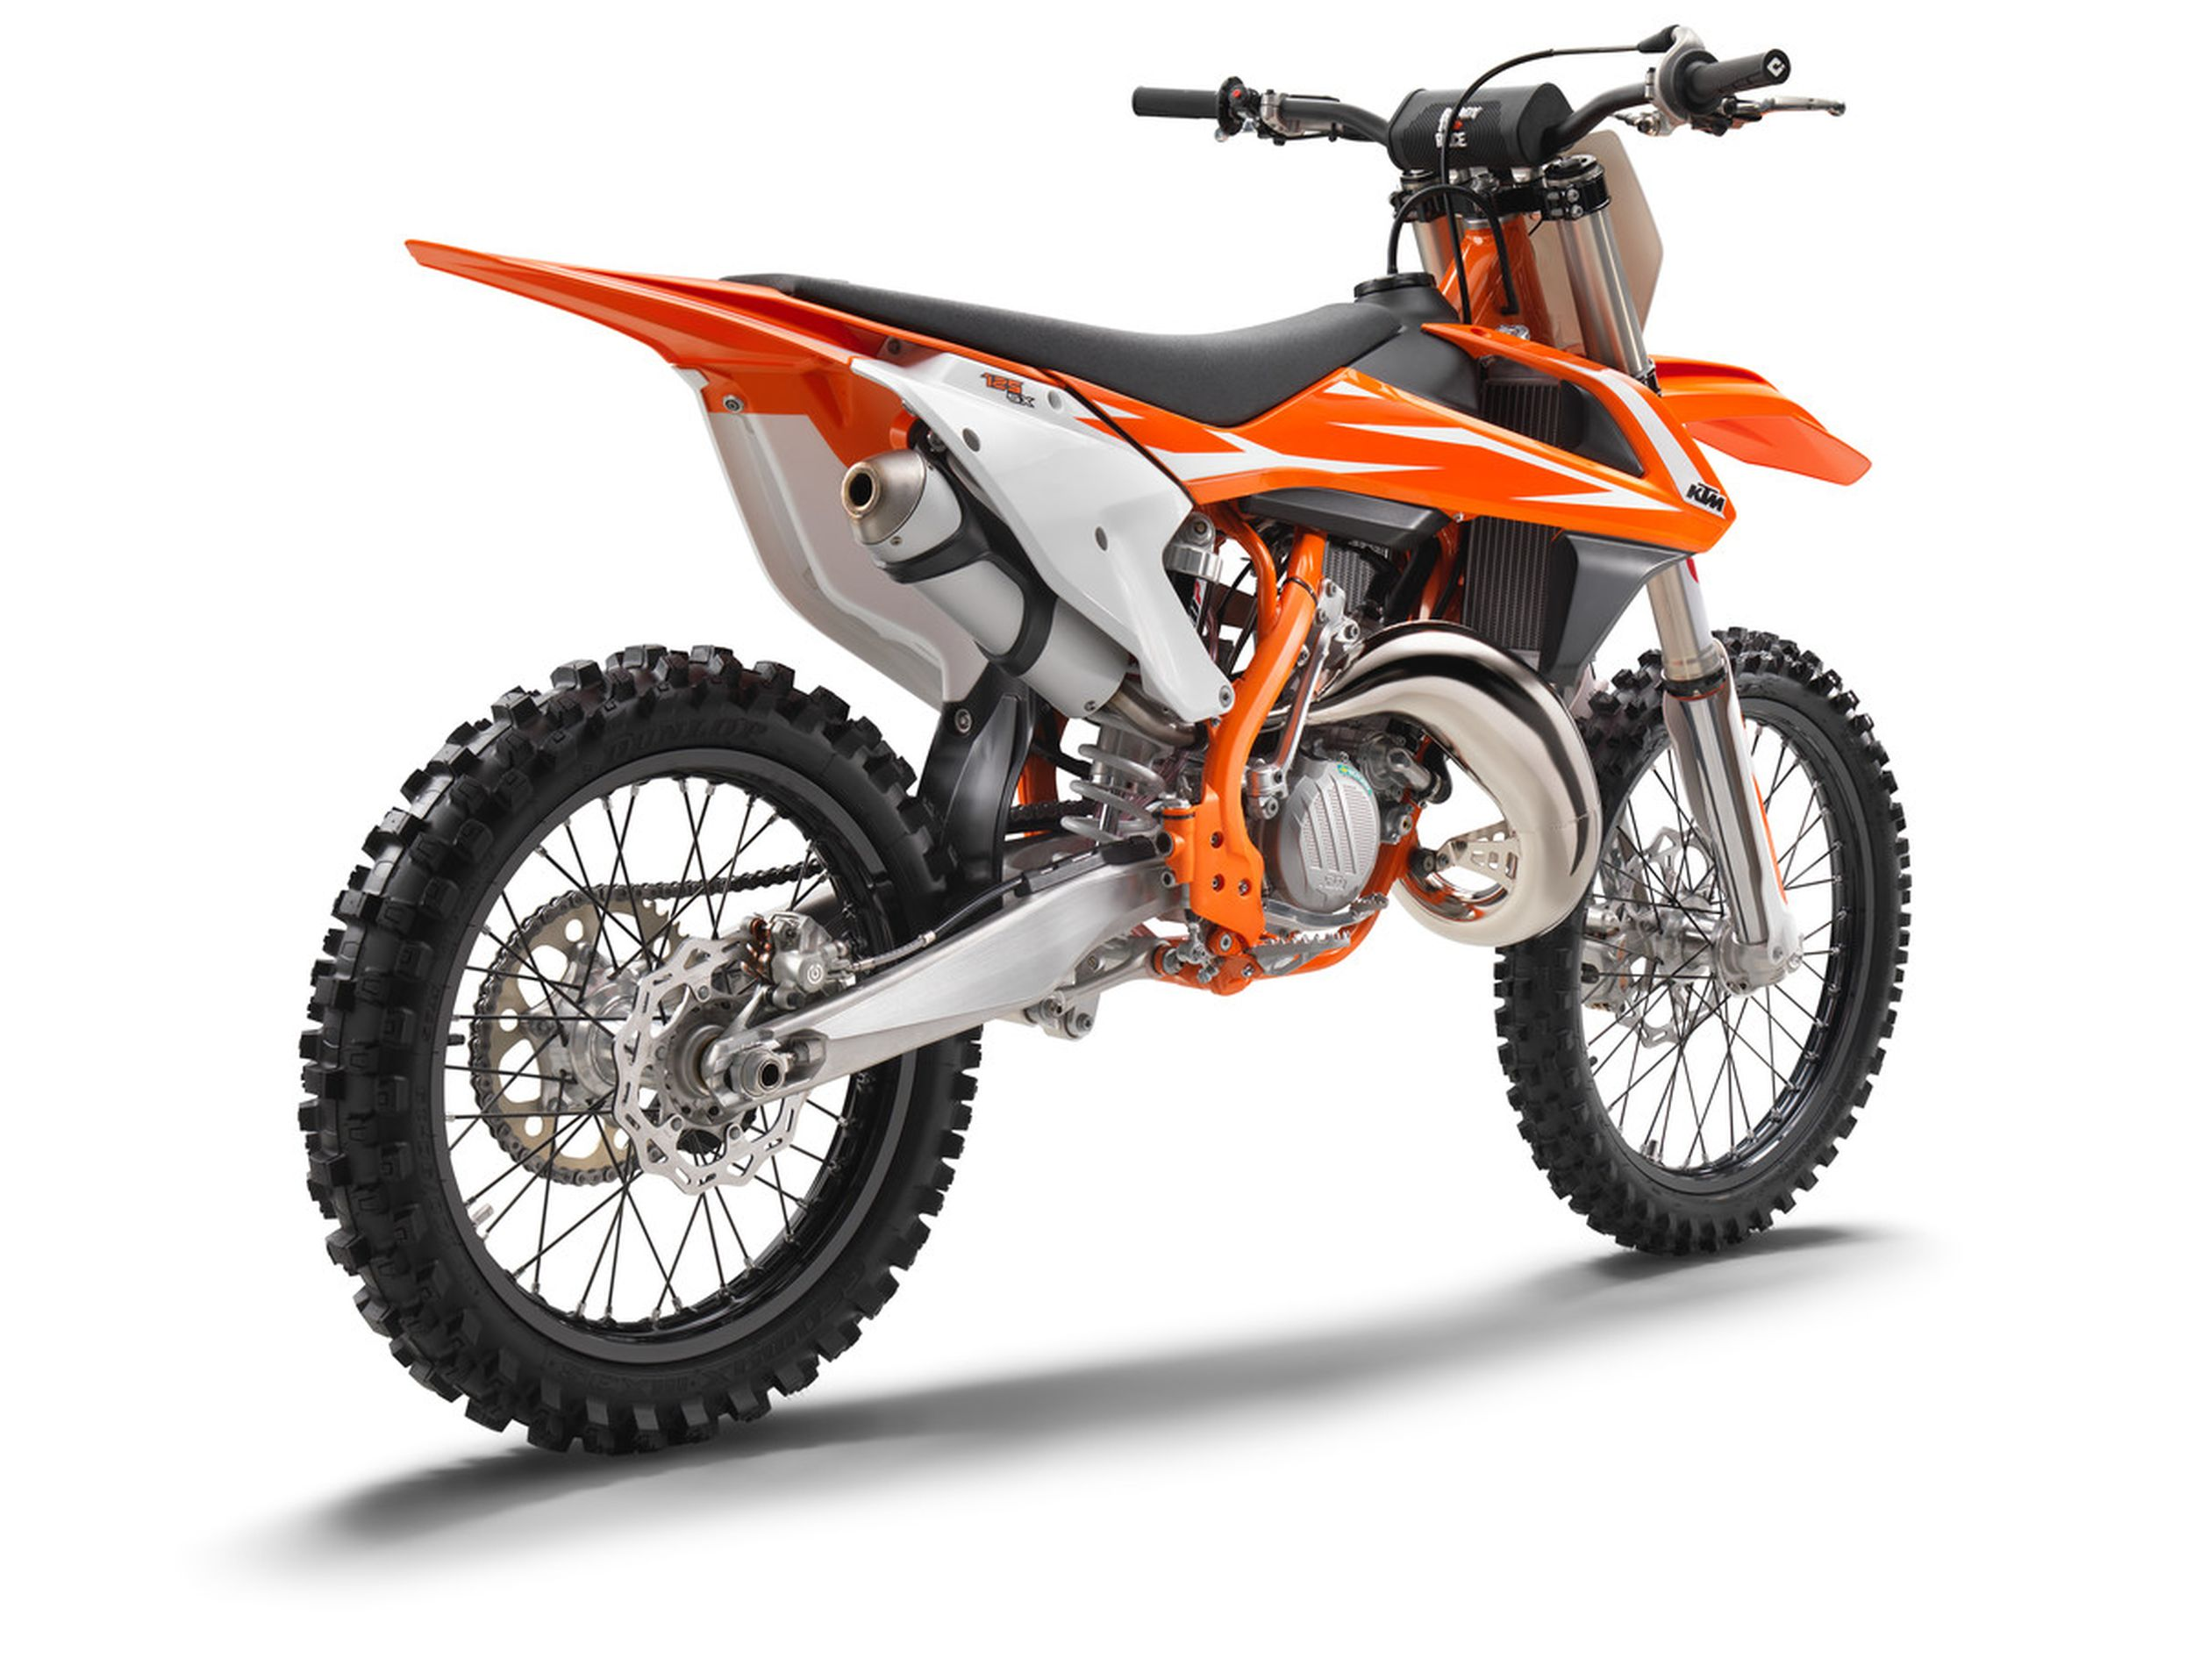 ktm 125 sx alle technischen daten zum modell 125 sx von ktm. Black Bedroom Furniture Sets. Home Design Ideas